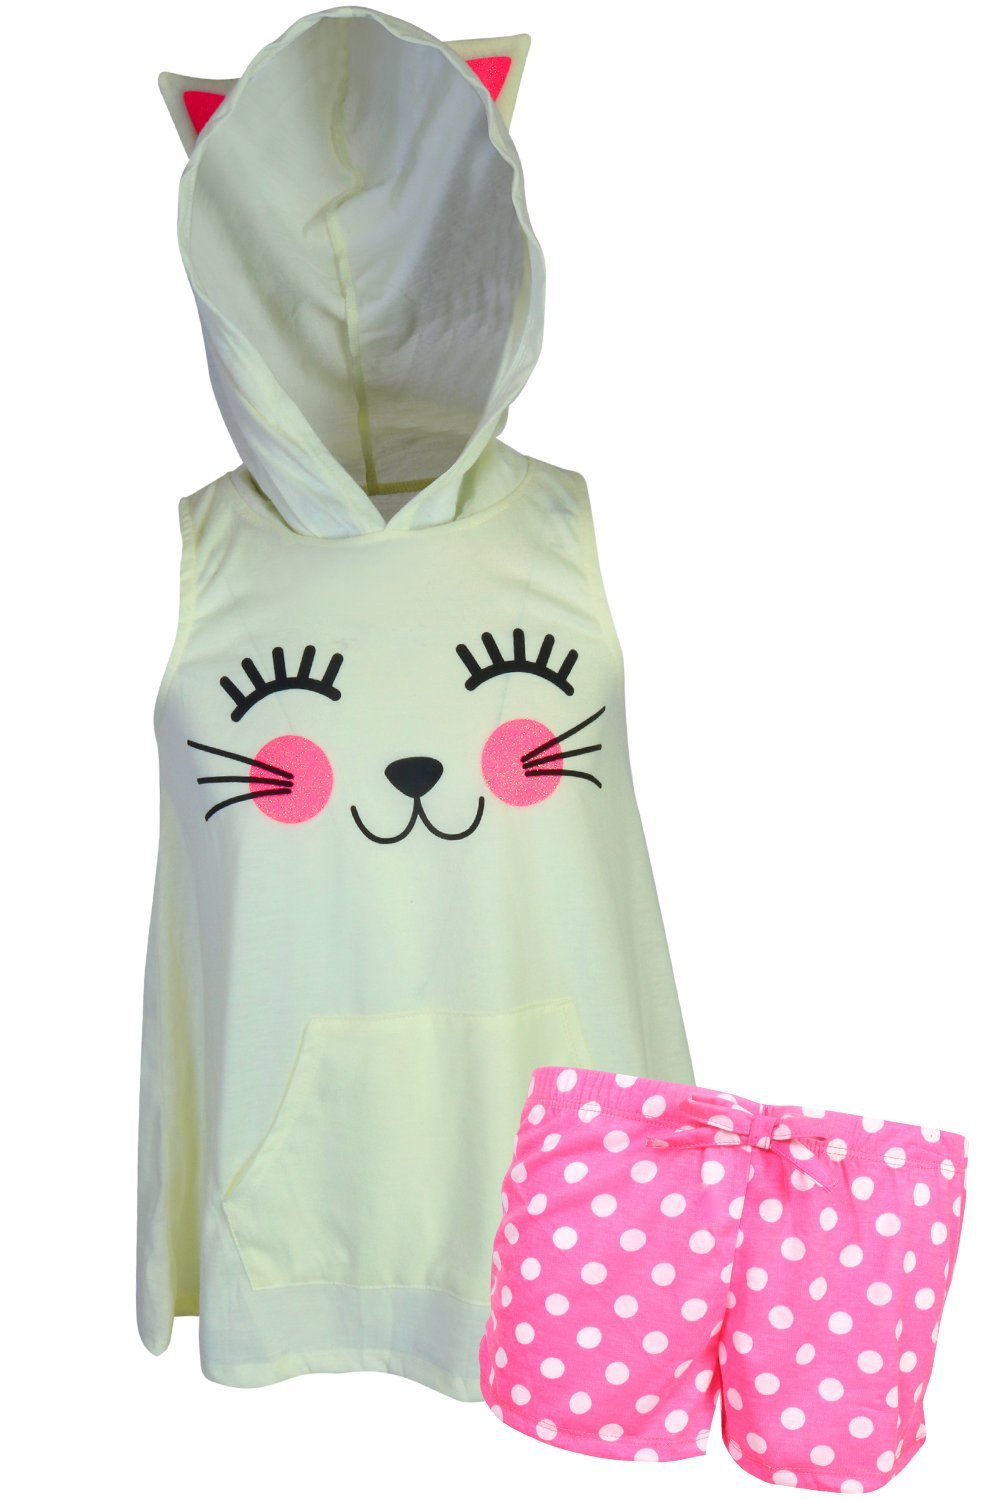 dELiA*s dELiAs Girl's Sleeveless Summer Pajama Short Set With Animal Character Hood, Cat, Size 10/12'